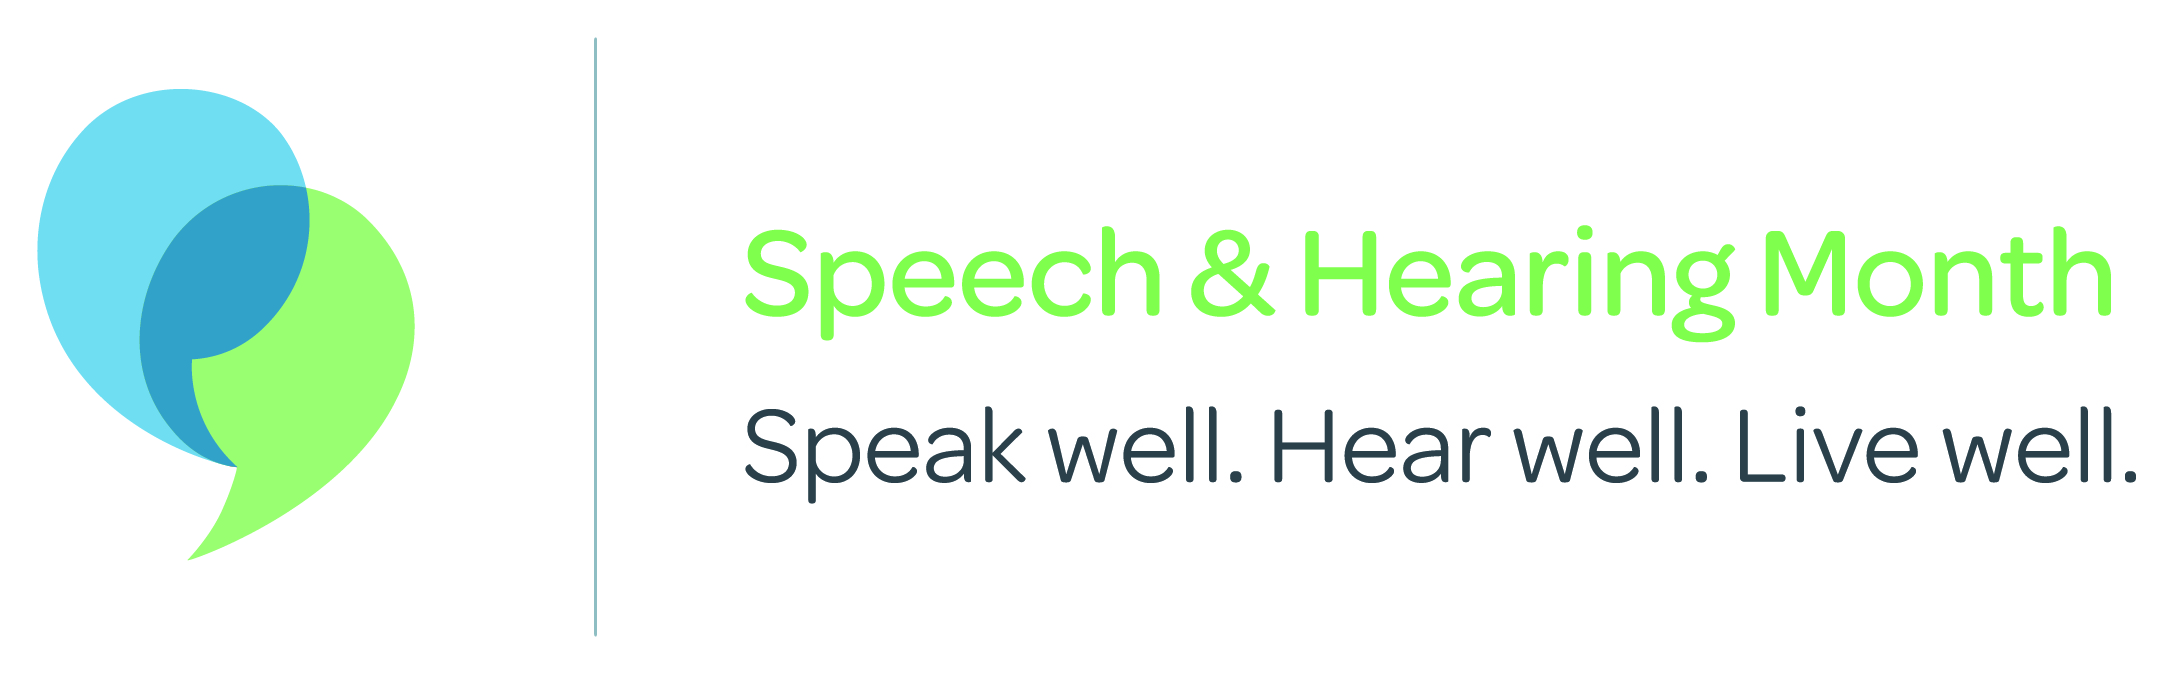 MAY IS 'BETTER SPEECH & HEARING' MONTH - Image 1